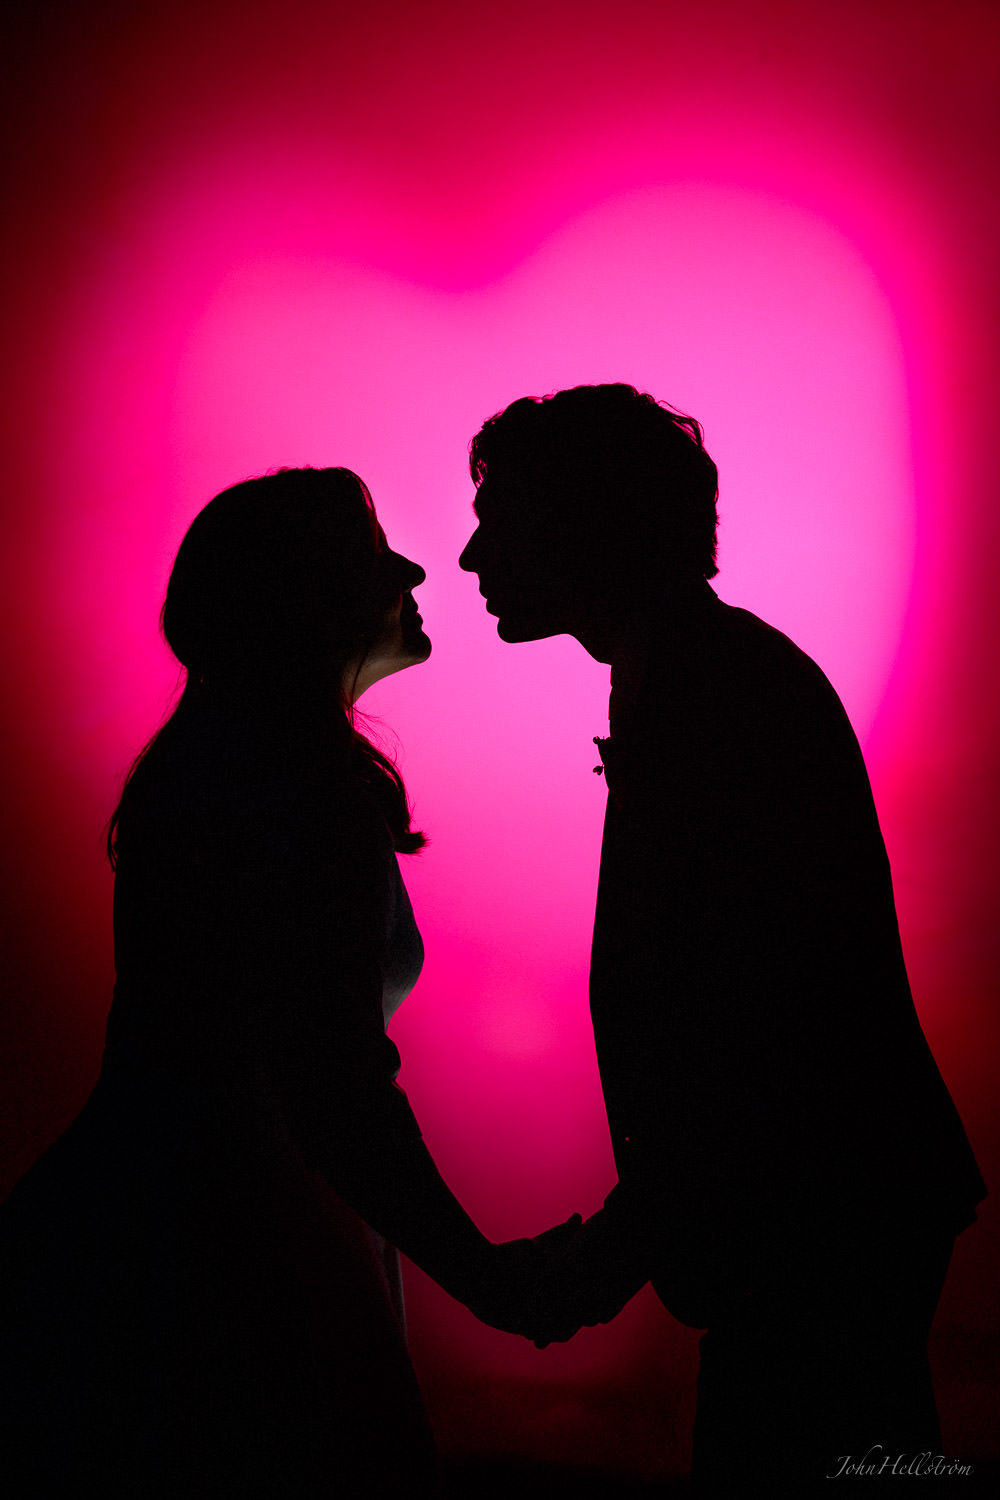 A loving moment. Image created by shaping and colouring a flash light.